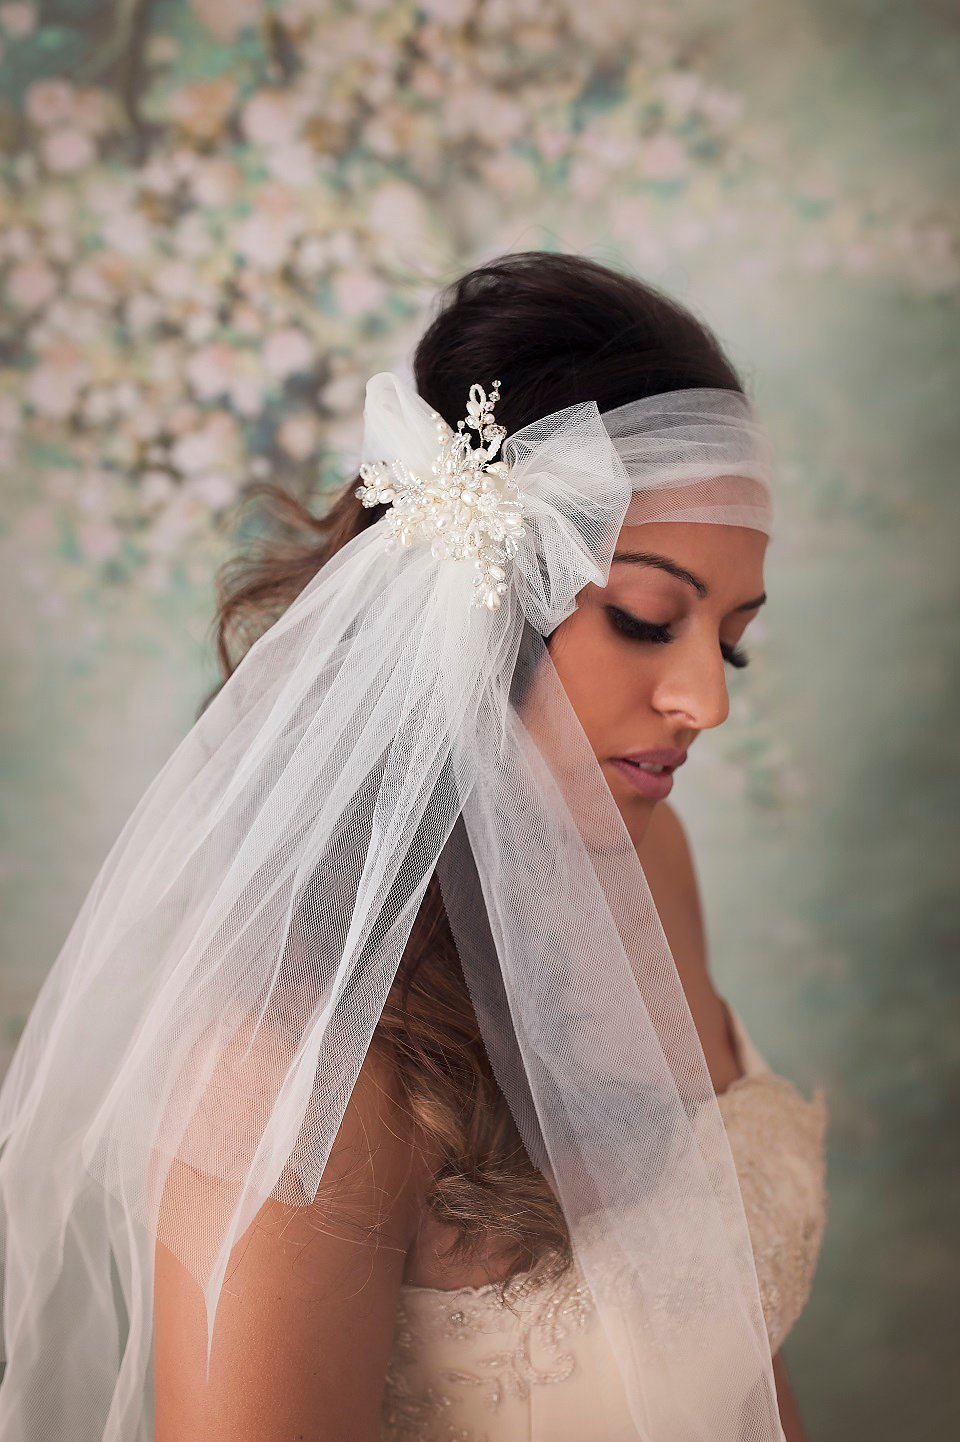 introducing mimosa couture bridal accessories - modern, versatile